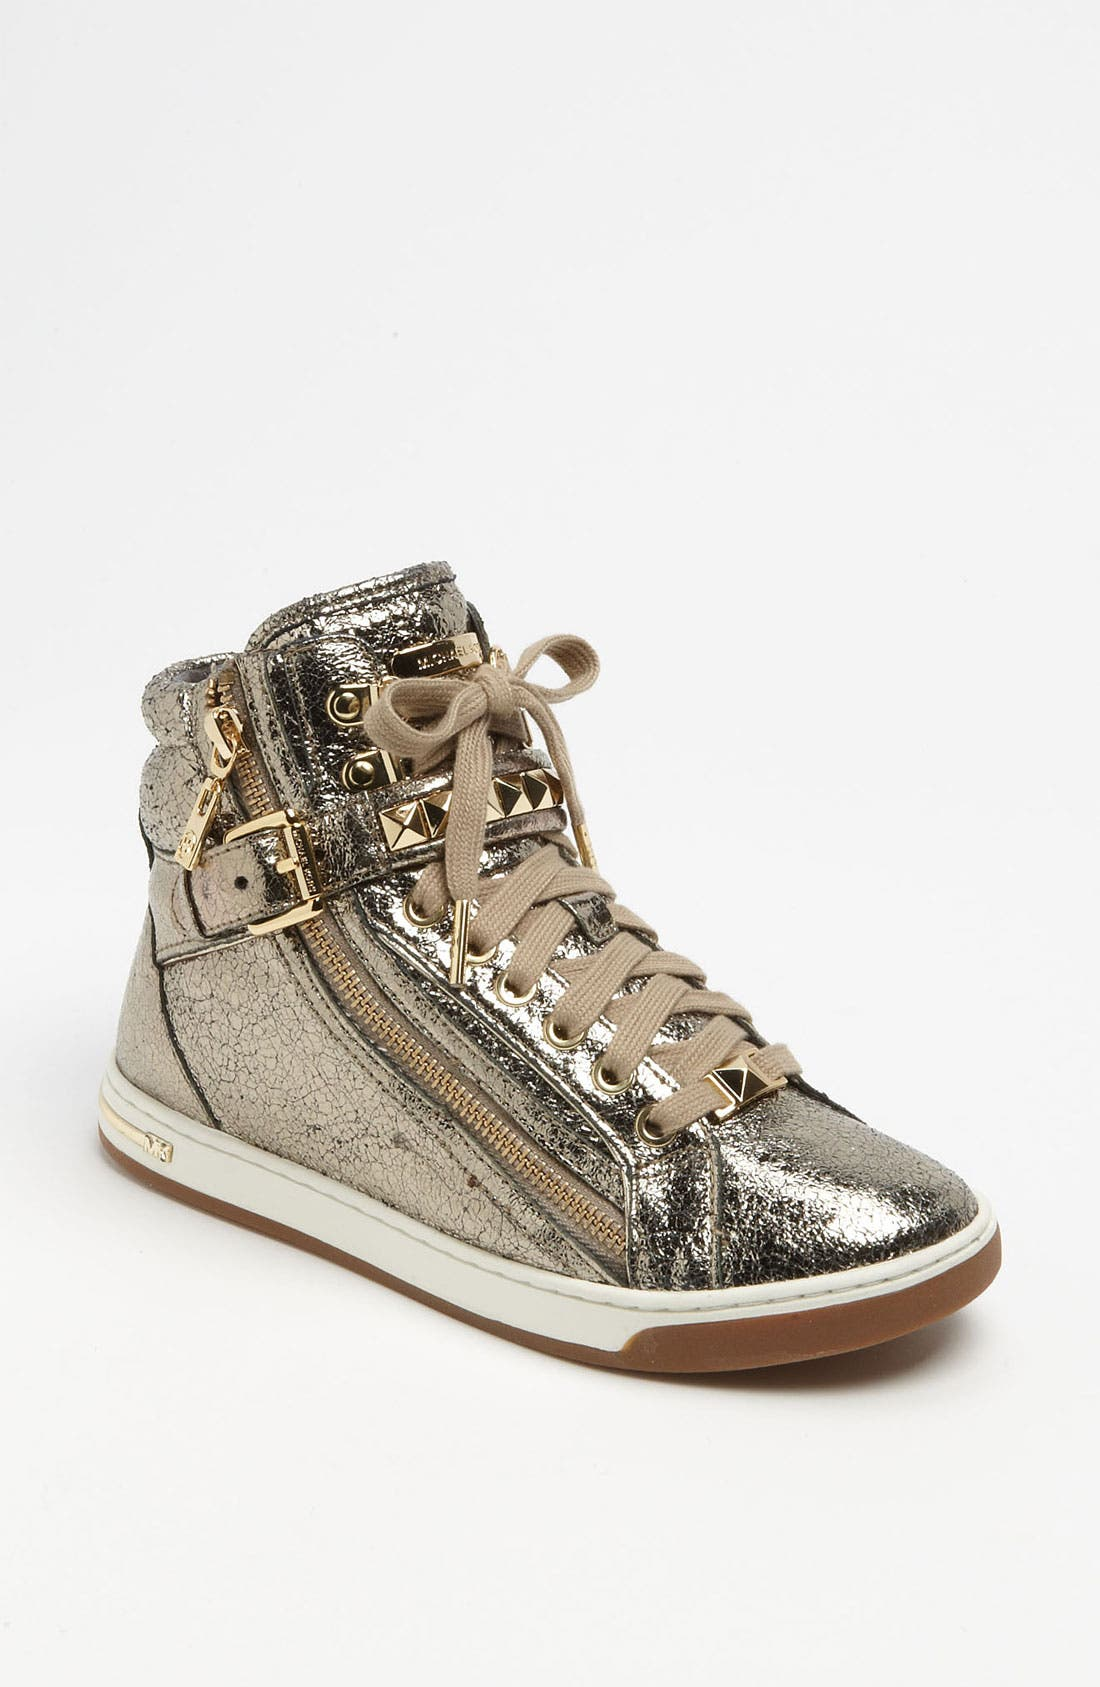 Alternate Image 1 Selected - MICHAEL Michael Kors 'Glam' High Top Sneaker